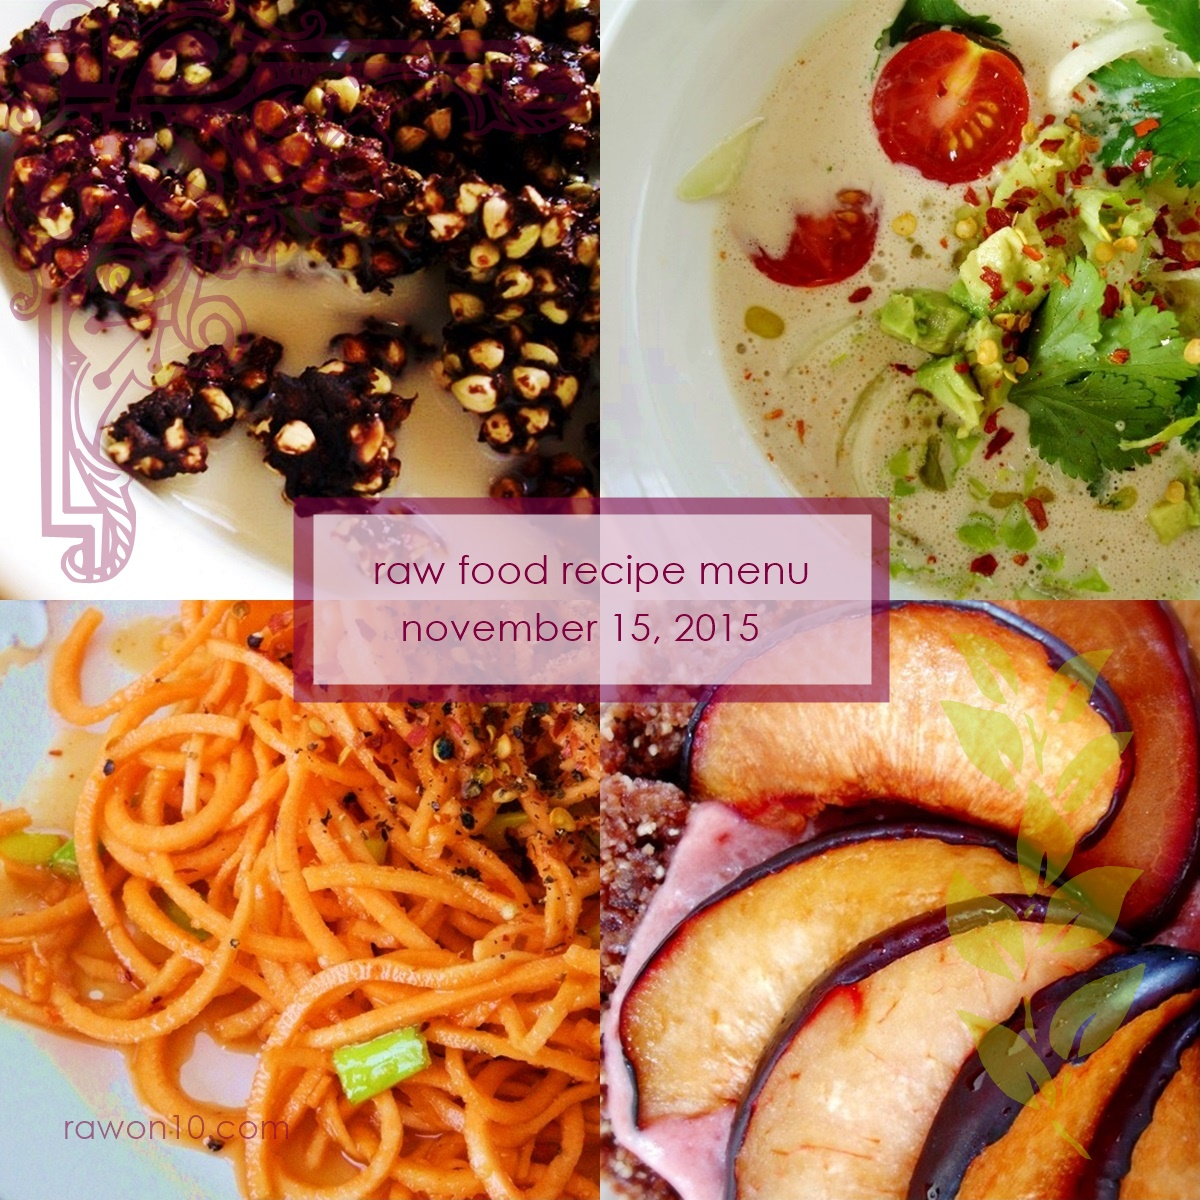 Raw on 10 a day or less raw food recipe menu november 15 2015 raw food recipe menu november 15 2015 forumfinder Images